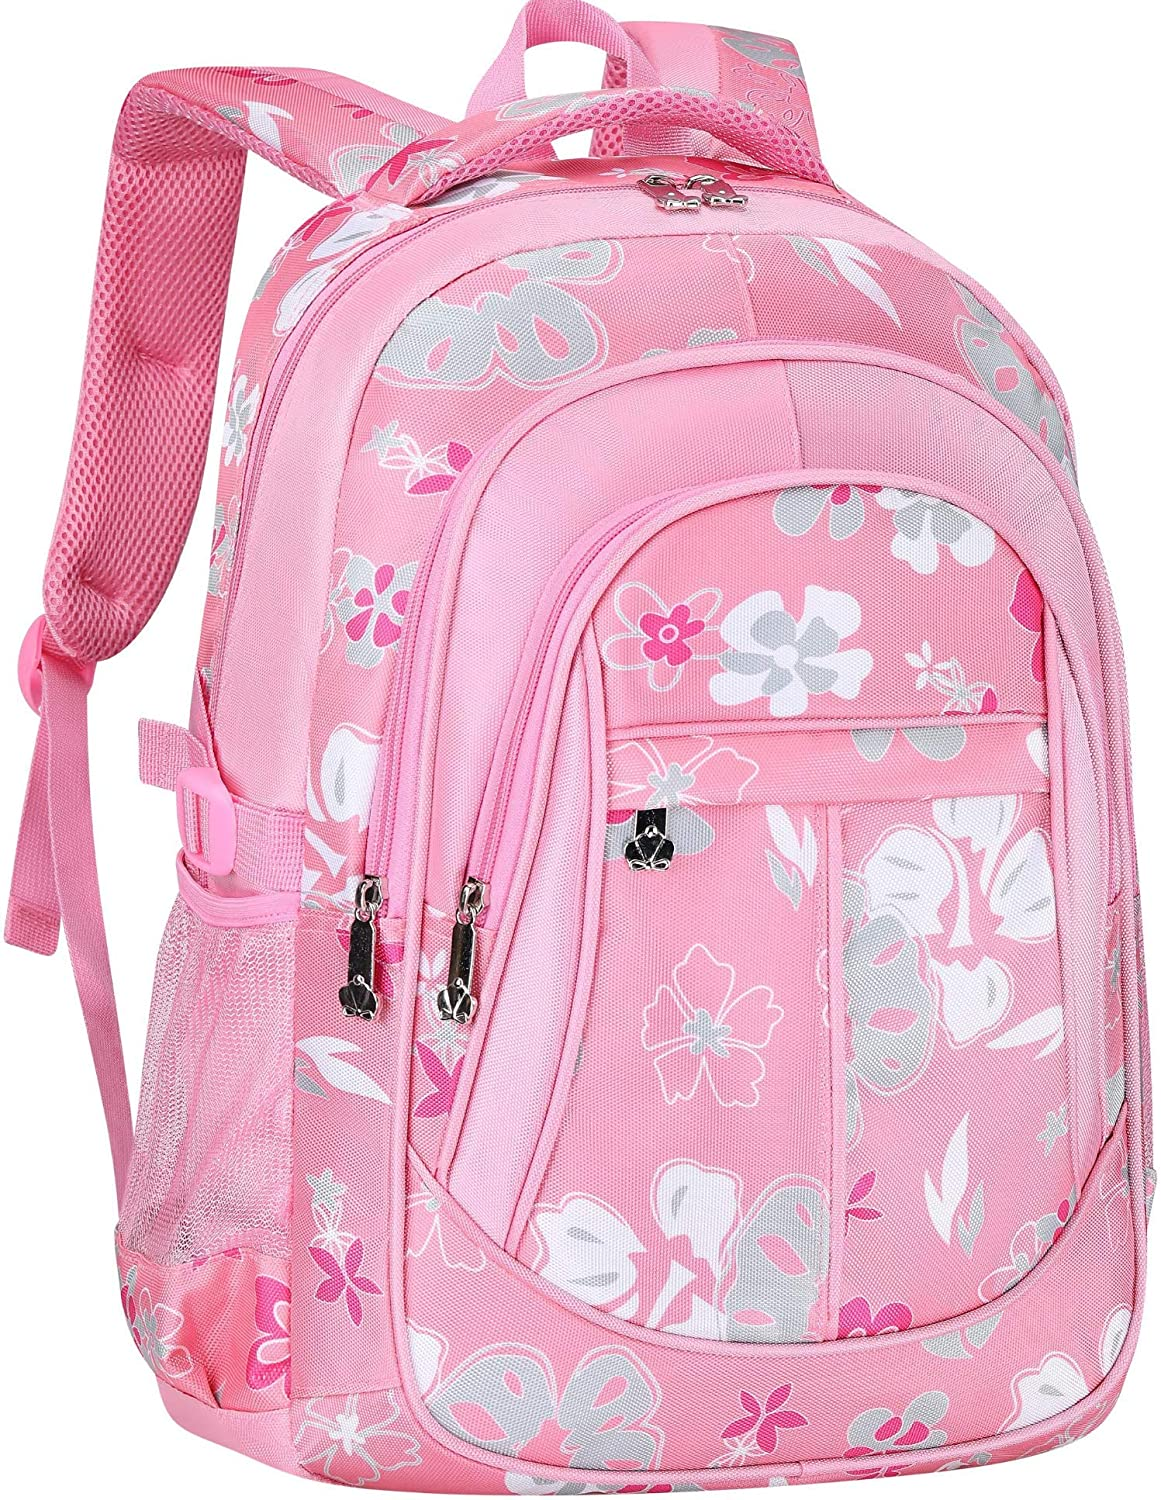 Backpack for Girls 18"